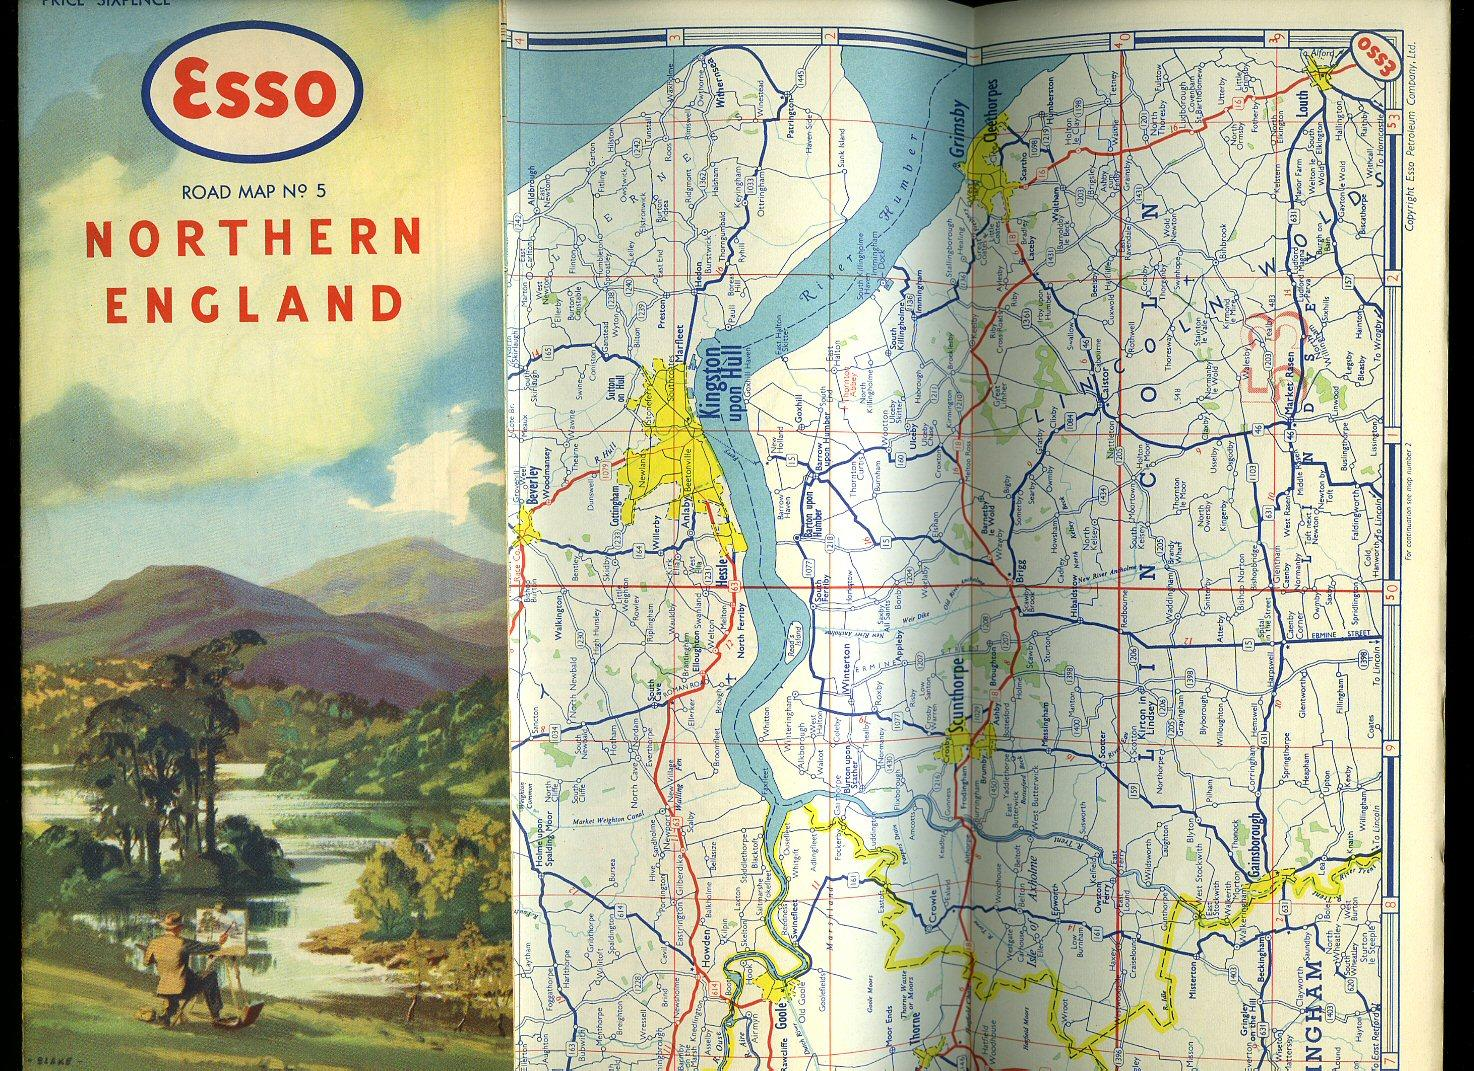 esso road map no 5 northern england illustration by blake to front